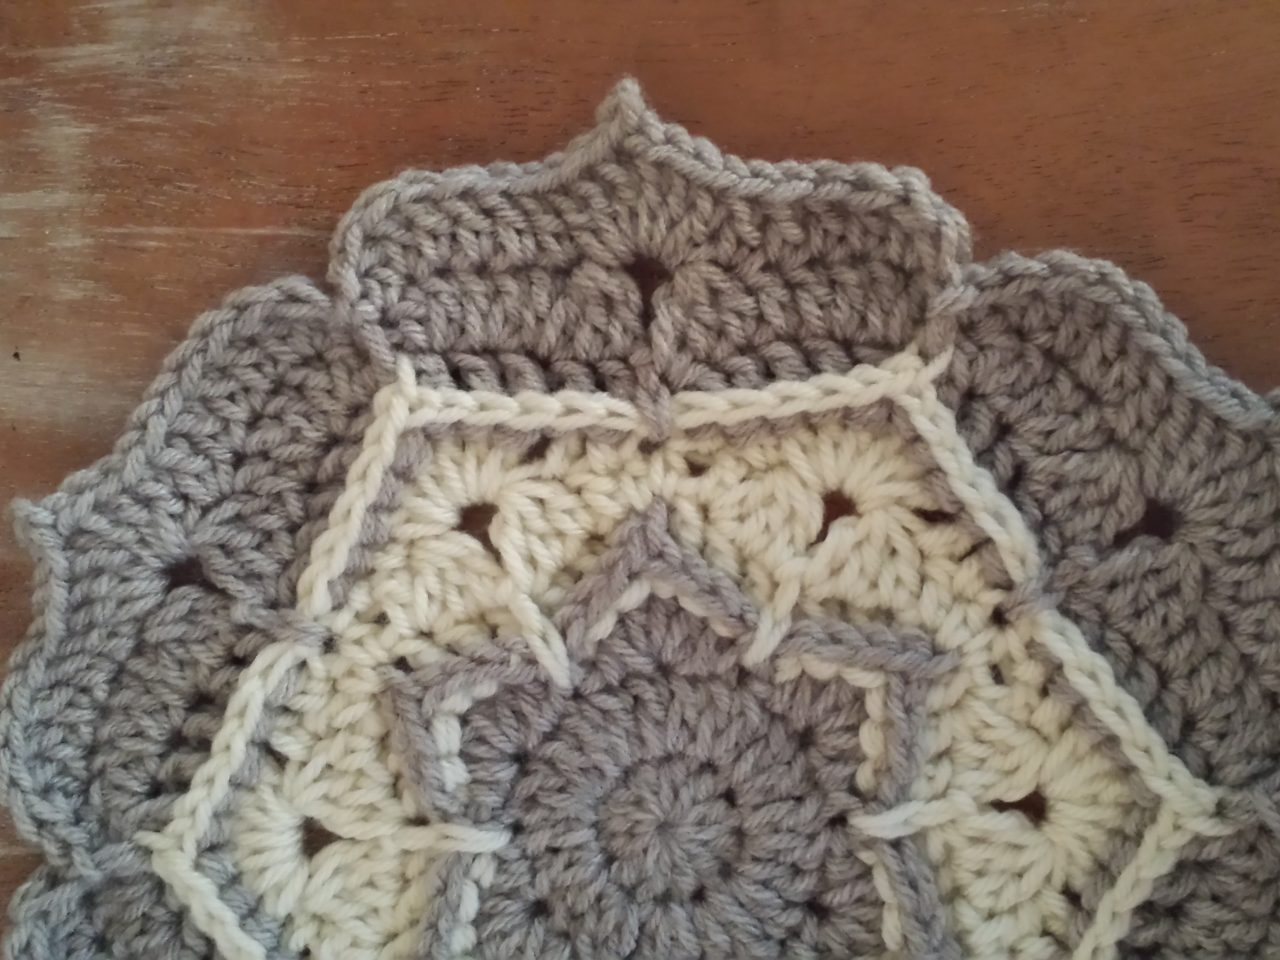 Crochet Blanket You Are Welcome To Subscribe To My Newsletter If You Would  Like To Continue To Receive Free Patterns,rmation On Premium Patterns  And